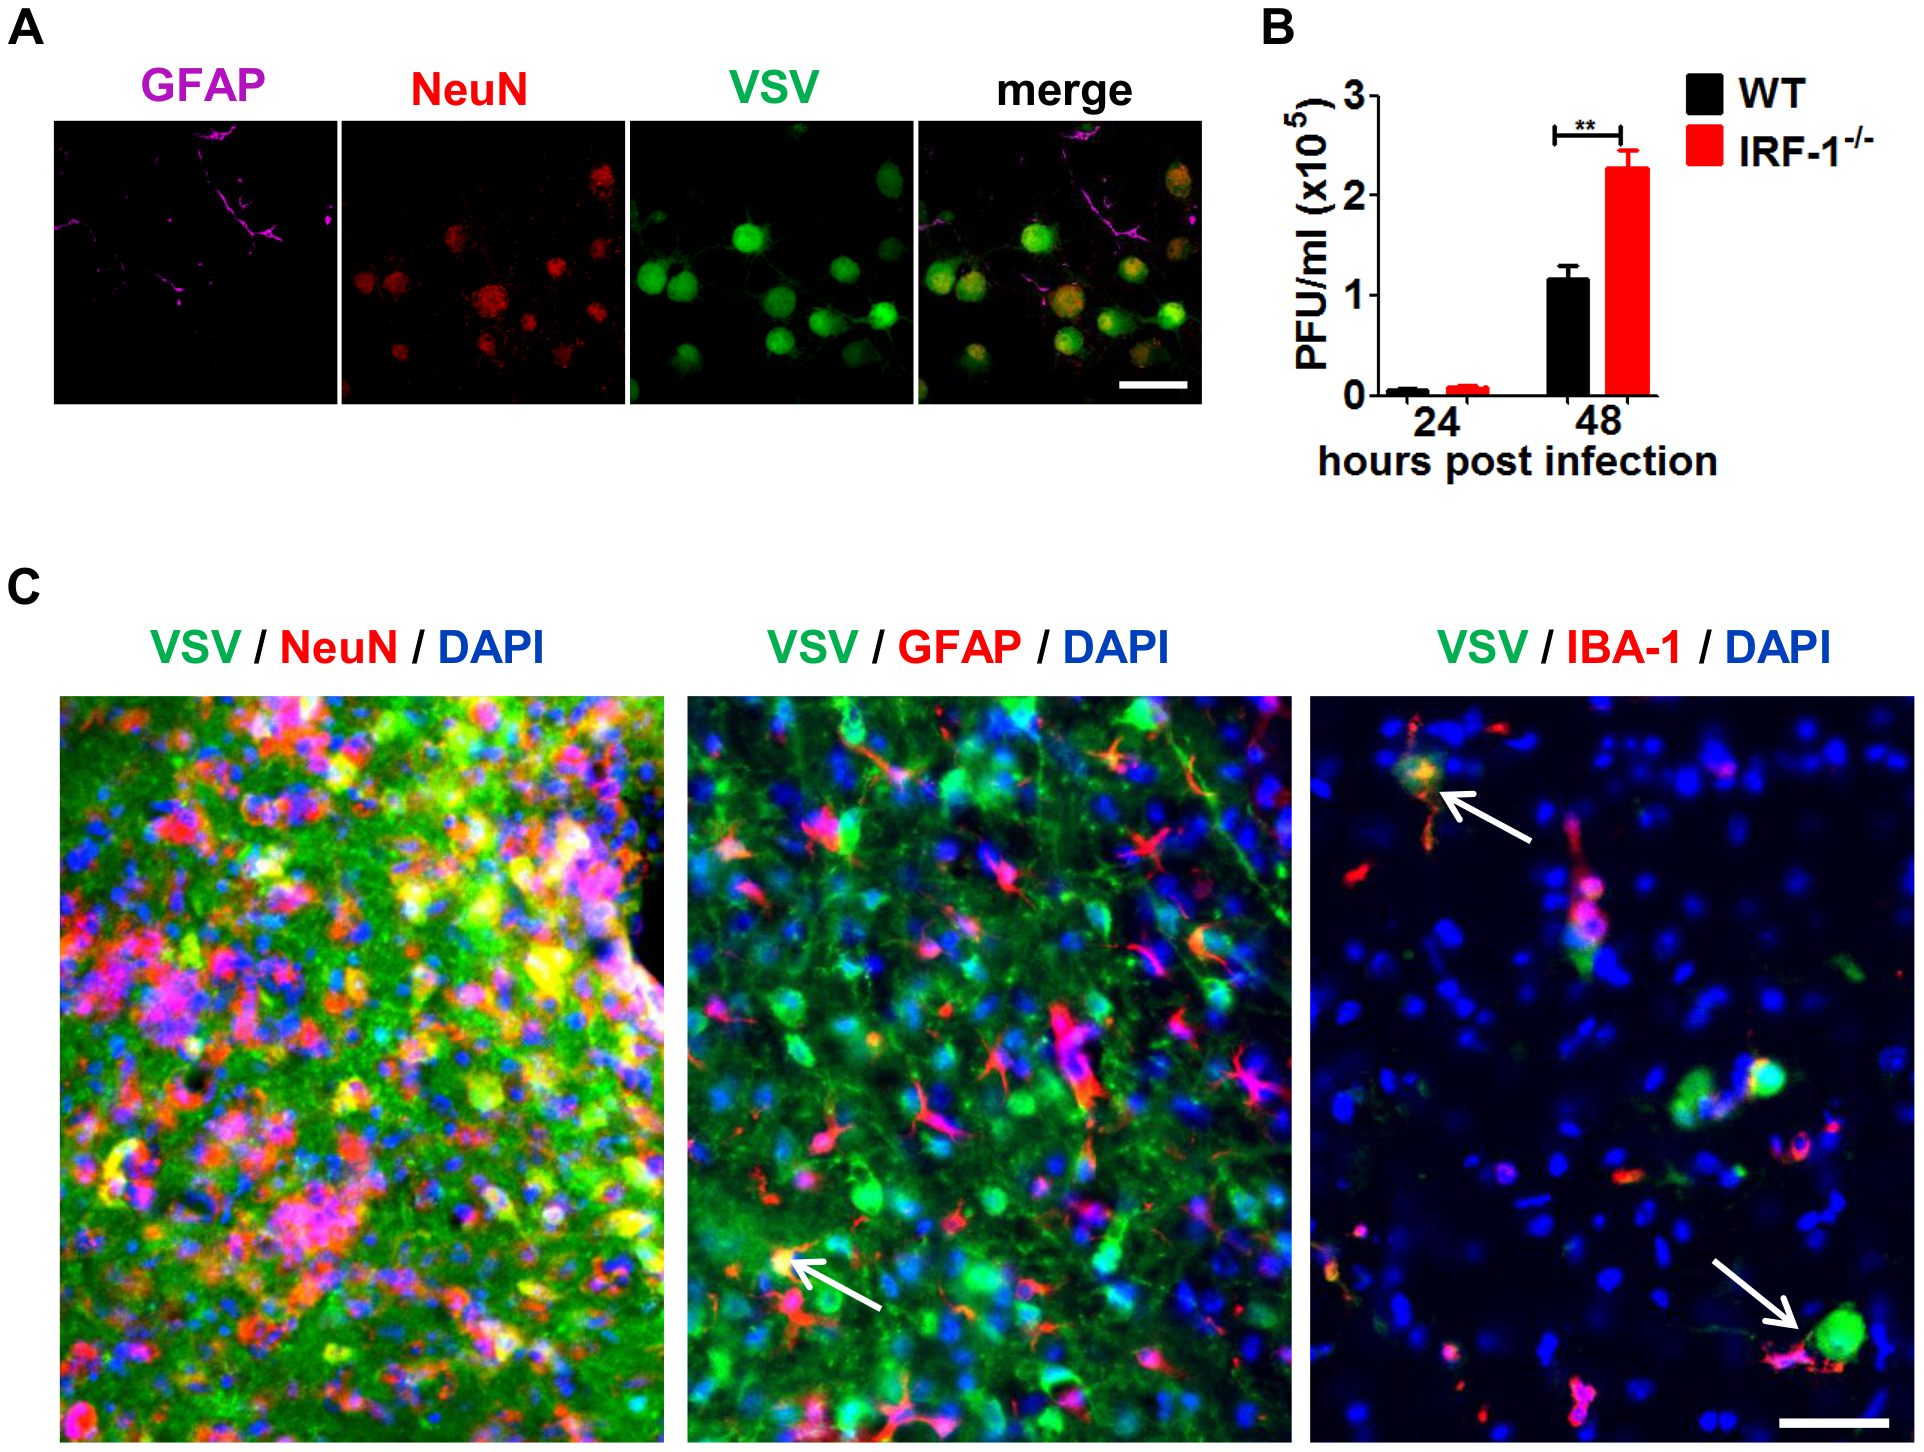 IRF-1 inhibits viral replication in primary neurons.